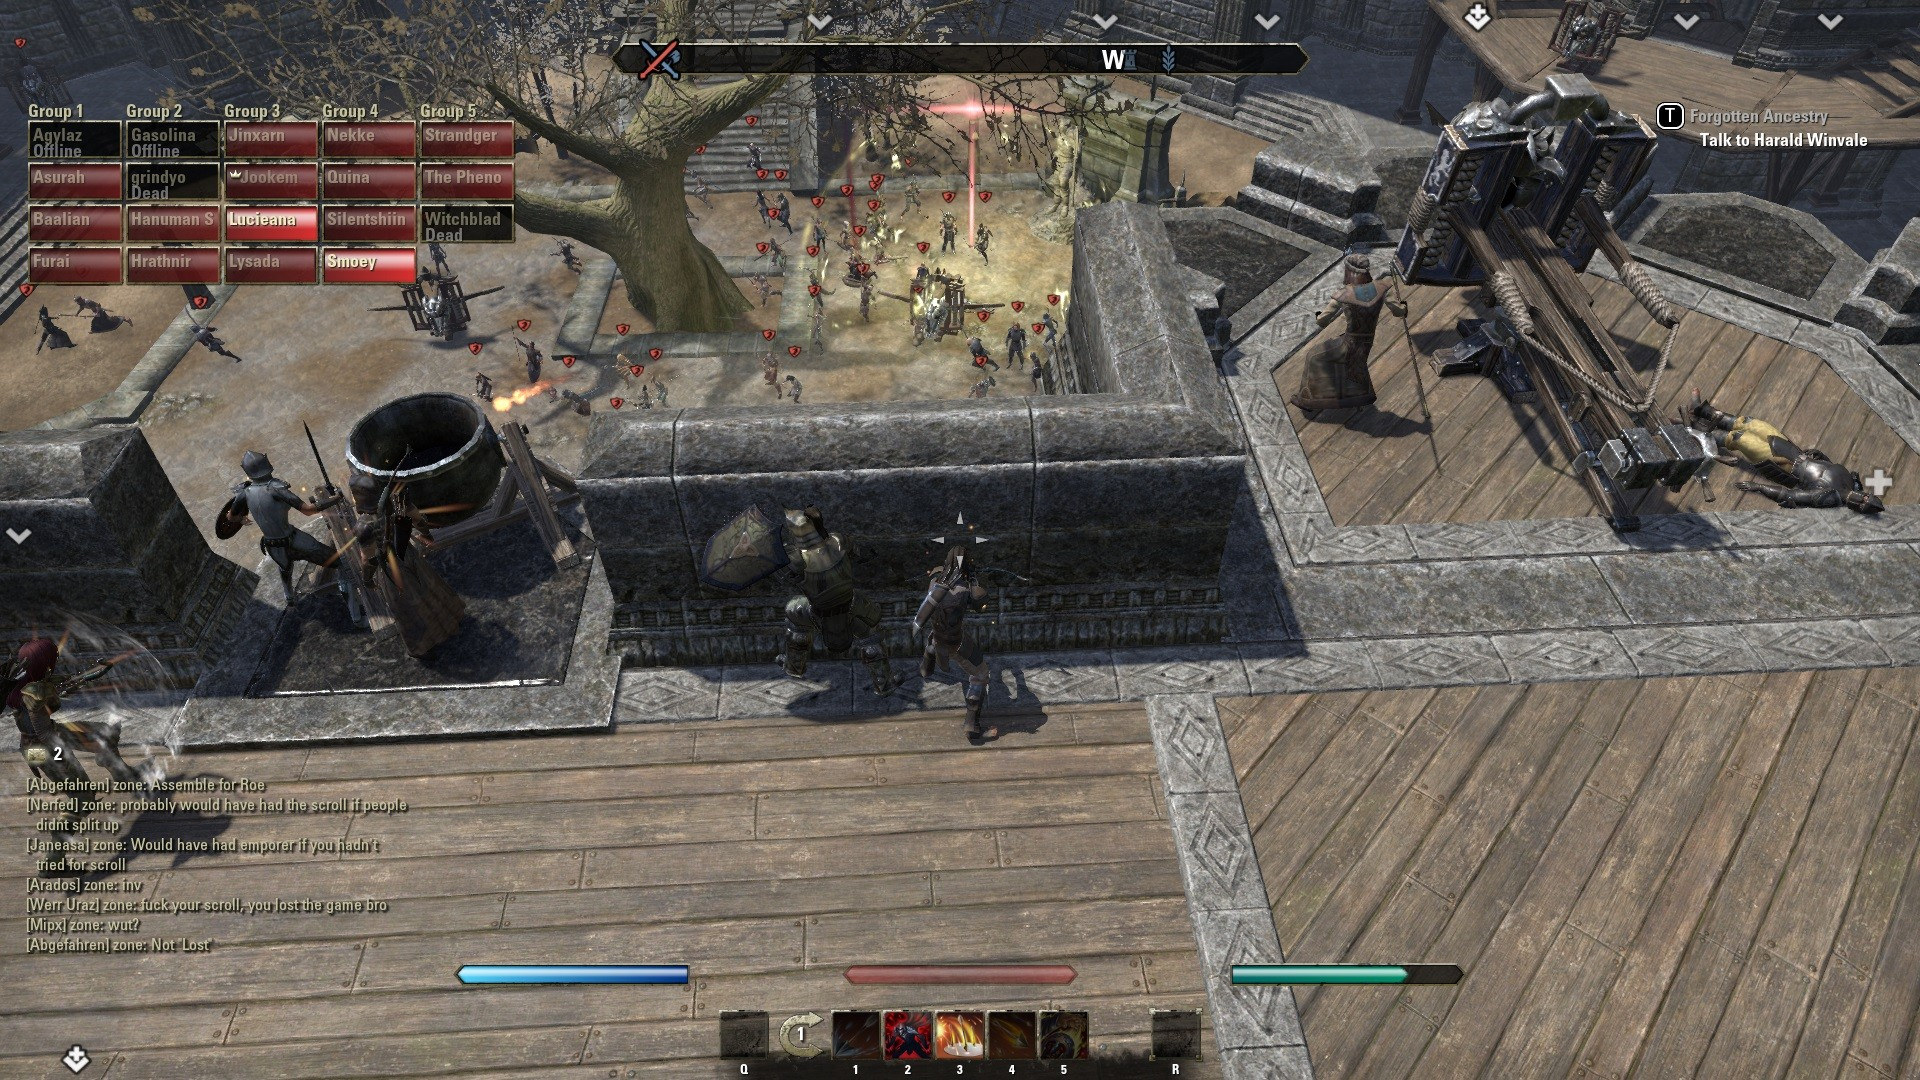 Elder Scrolls Online - I think we're going to lose this battle...